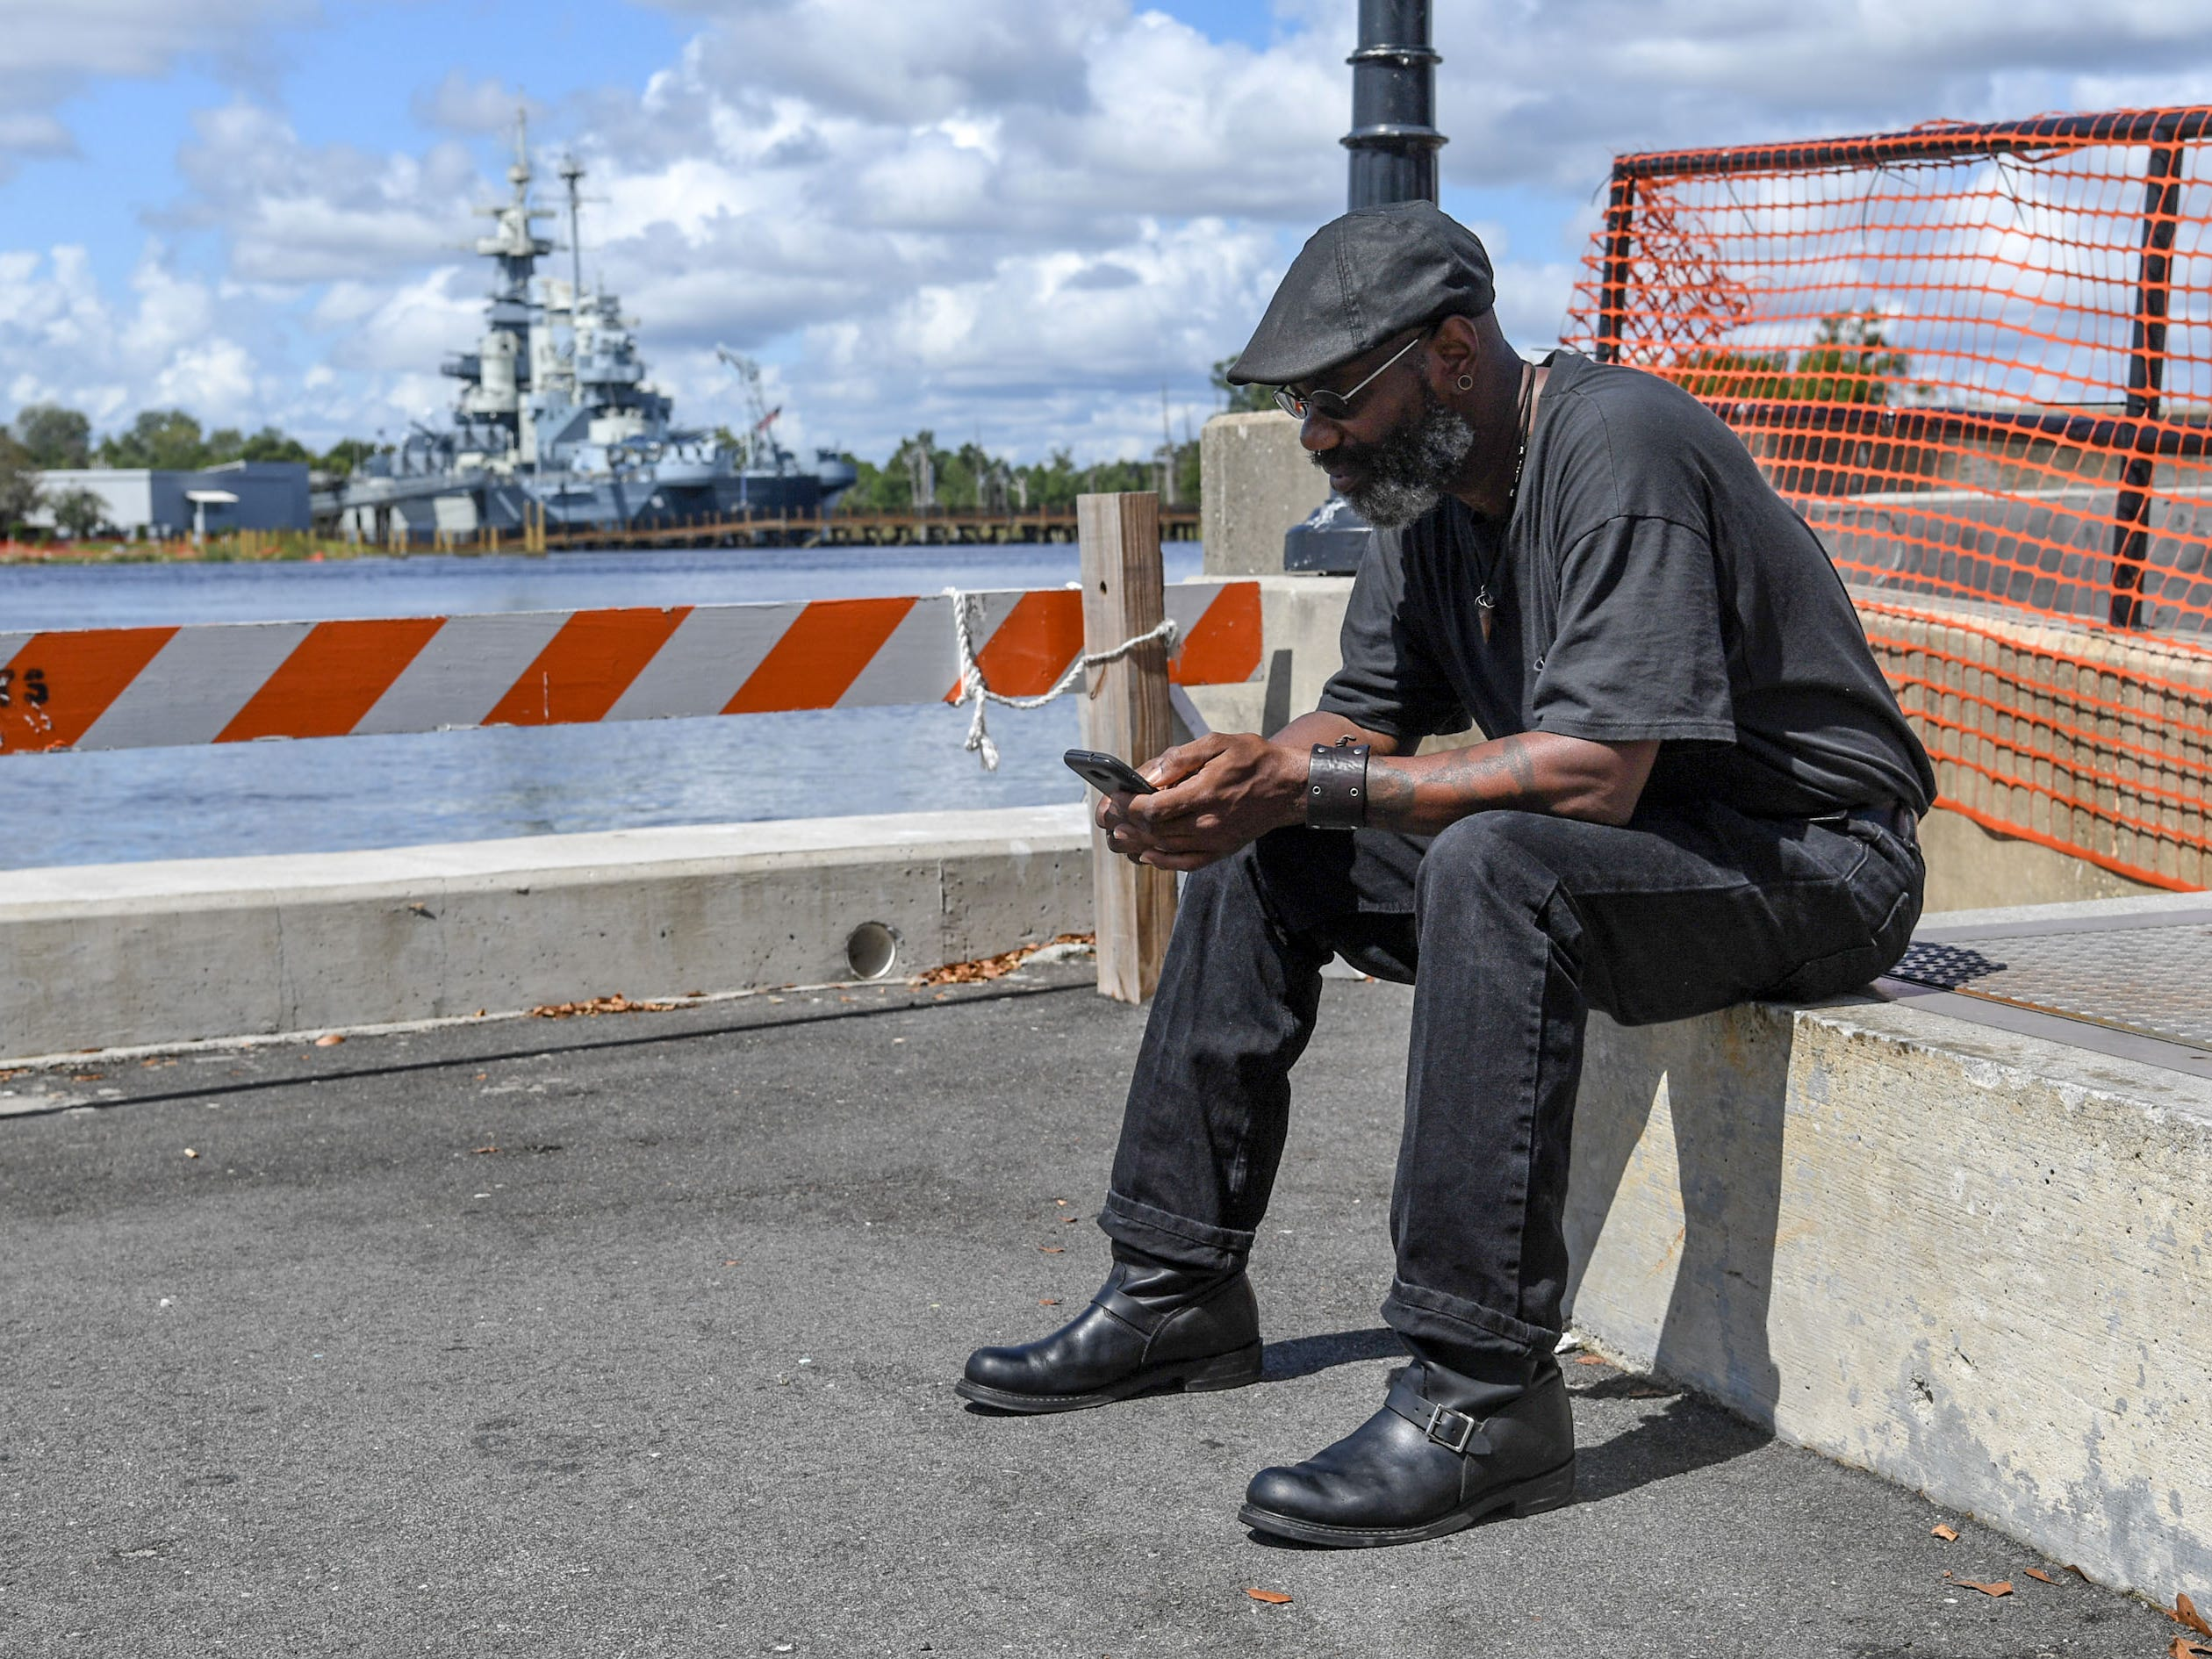 James Walker looks at his iPhone while taking time off from his shipyard job at the port of Wilmington, sitting near the USS North Carolina in Wilmington, North Carolina on Wednesday, September 12, 2018.  (Ken Ruinard / Greenville News / Gannett USA Today Network / 2018 )